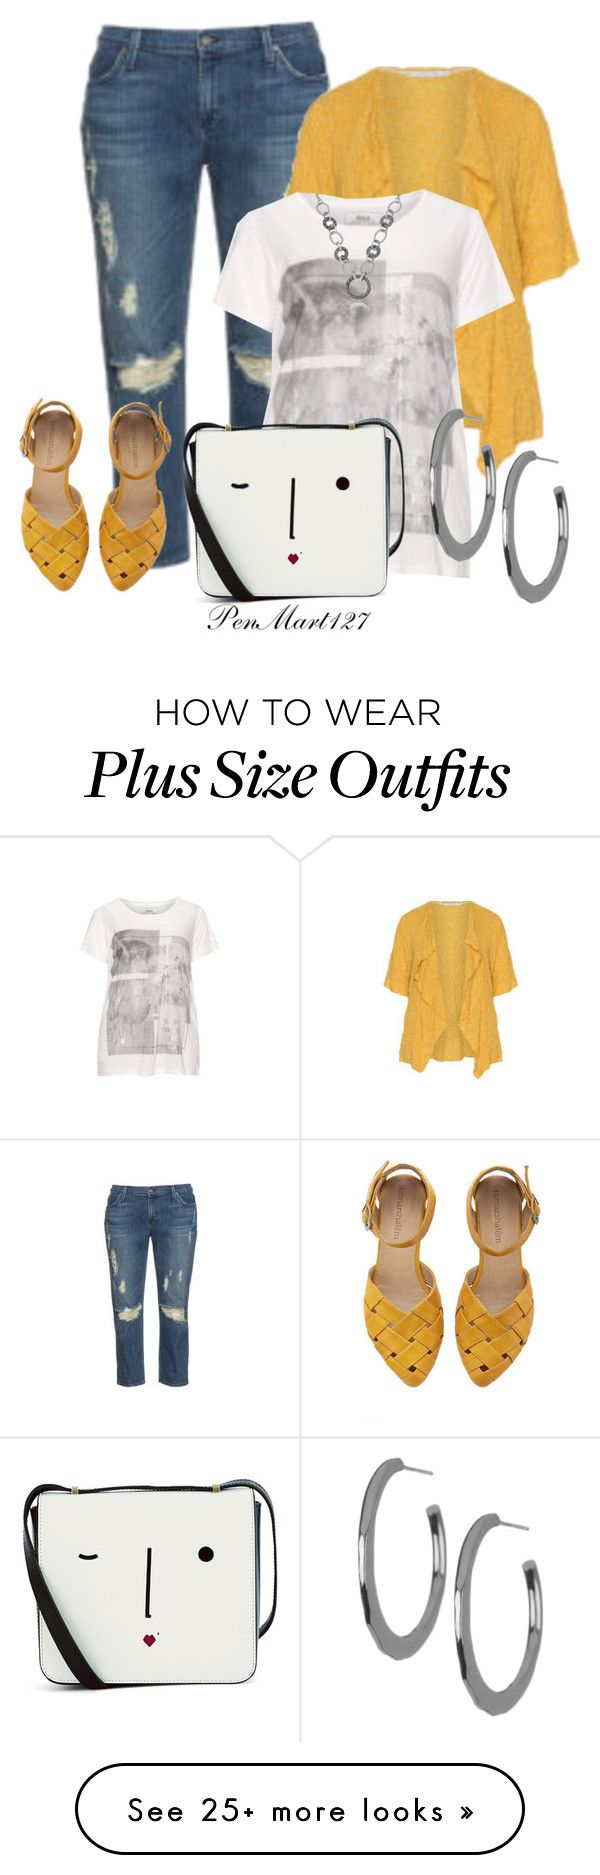 """""""Front and Center #Plussize"""" by penny-martin on Polyvore featuring navabi, Lulu Guinness, Belk & Co. and Argento Vivo"""